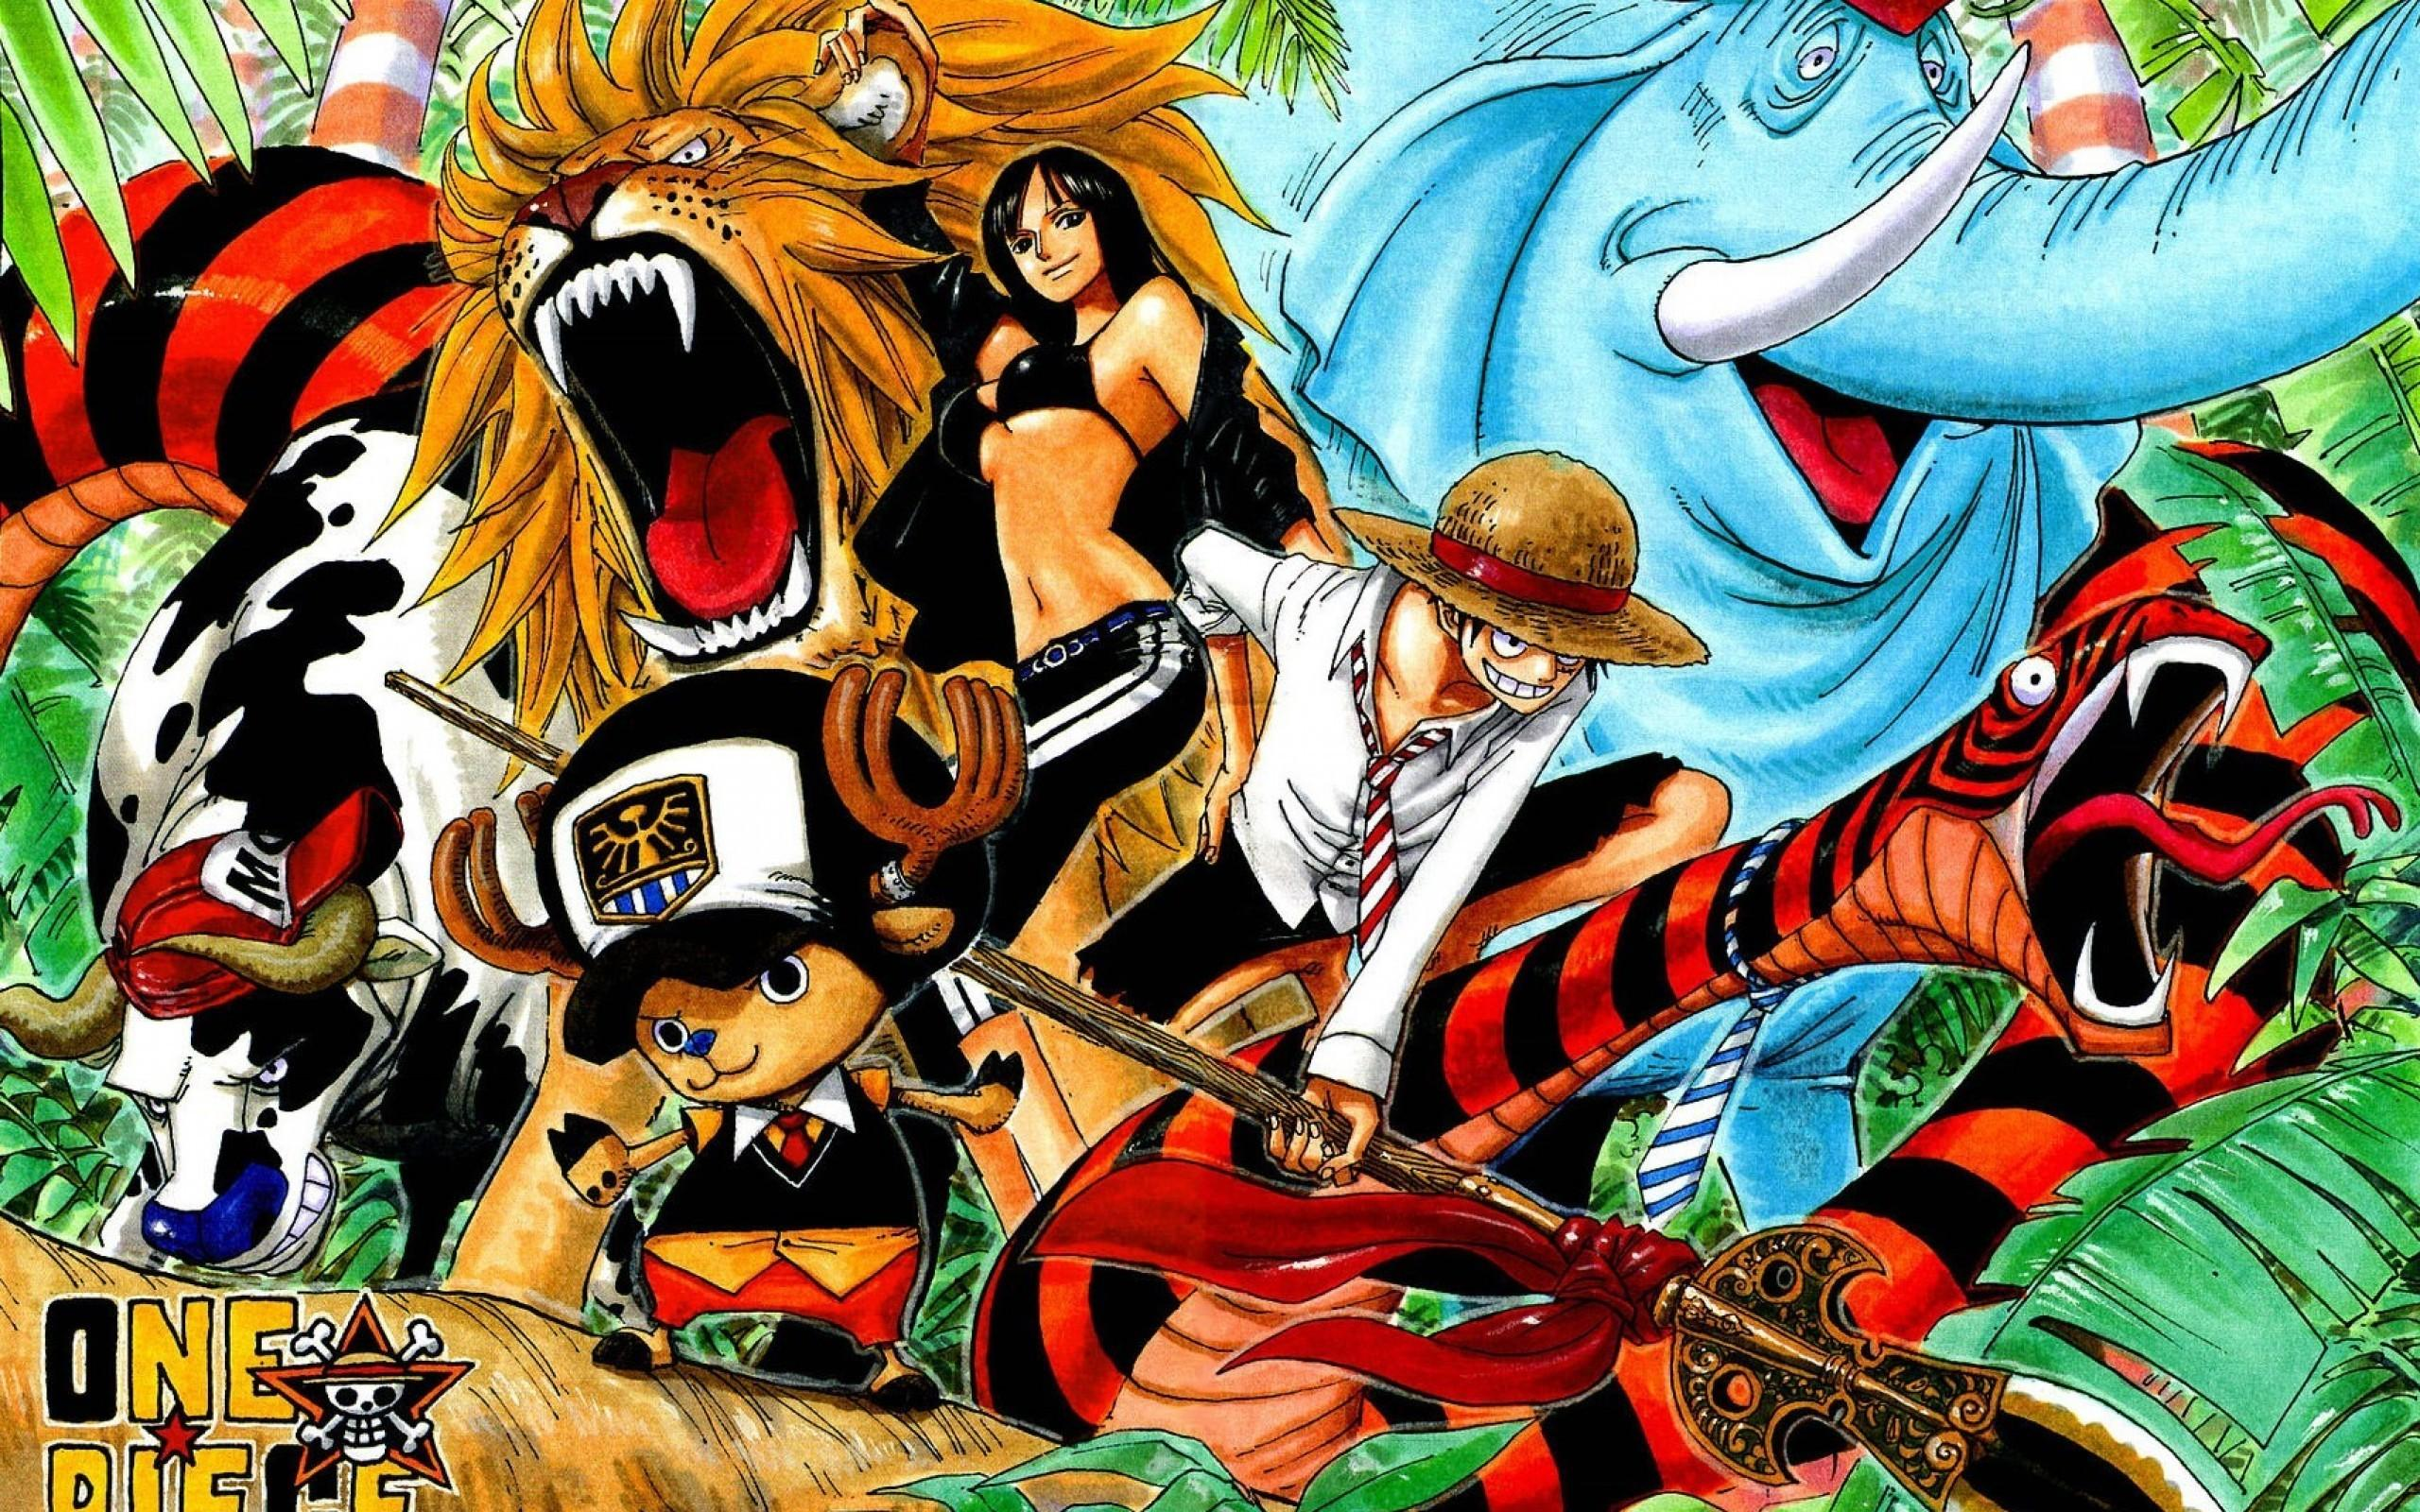 One One Piece Manga Wallpaper 4k 125164 Hd Wallpaper Backgrounds Download